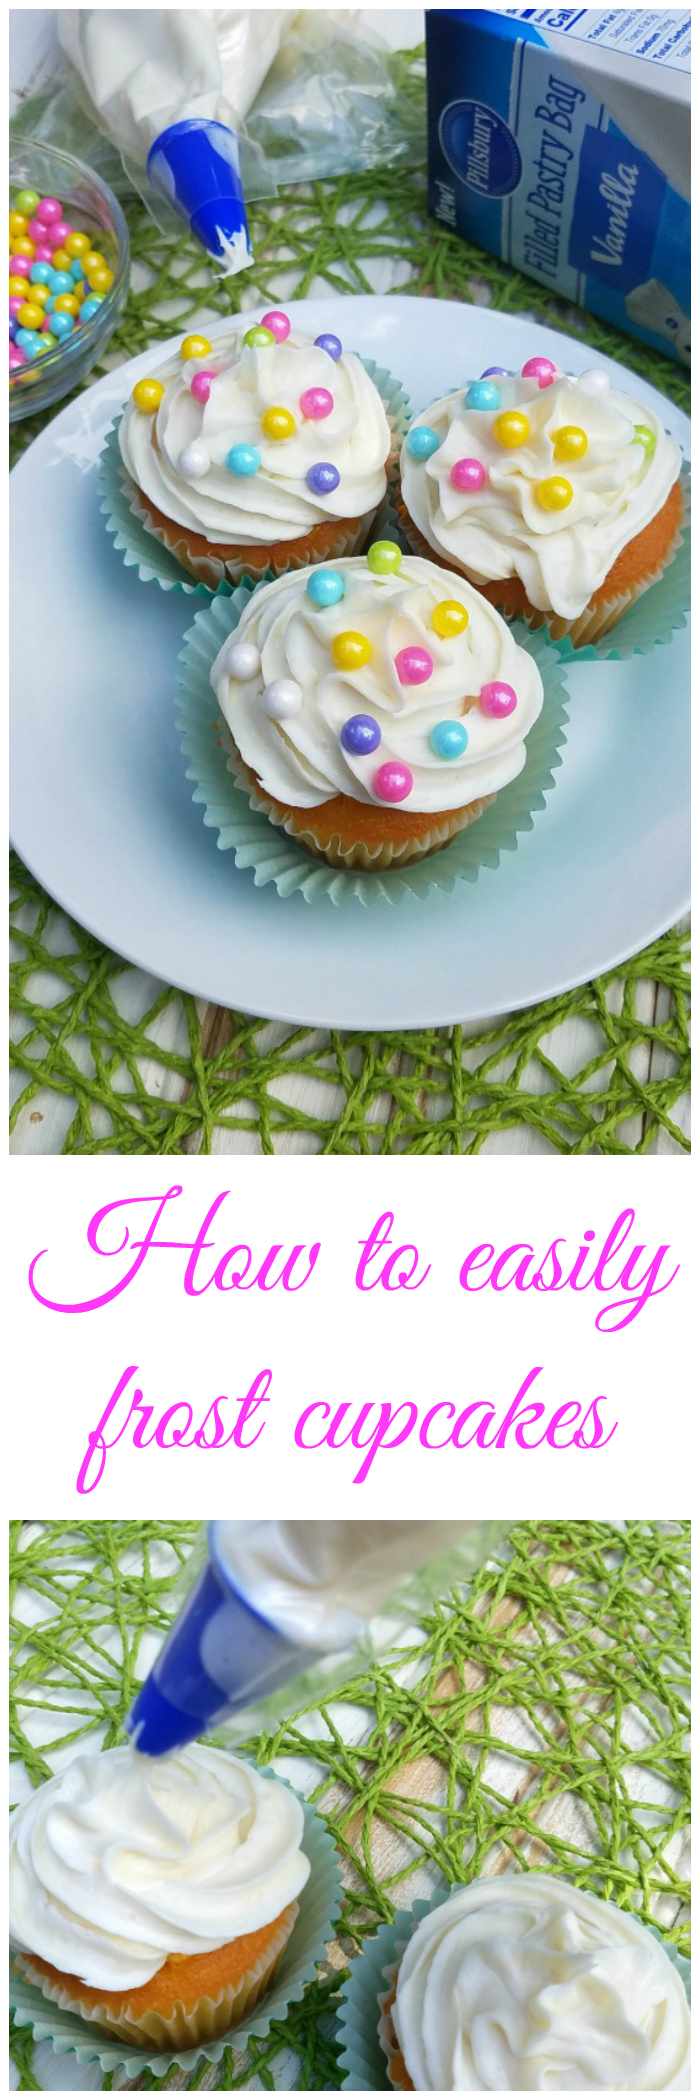 How to easily frost cupcakes